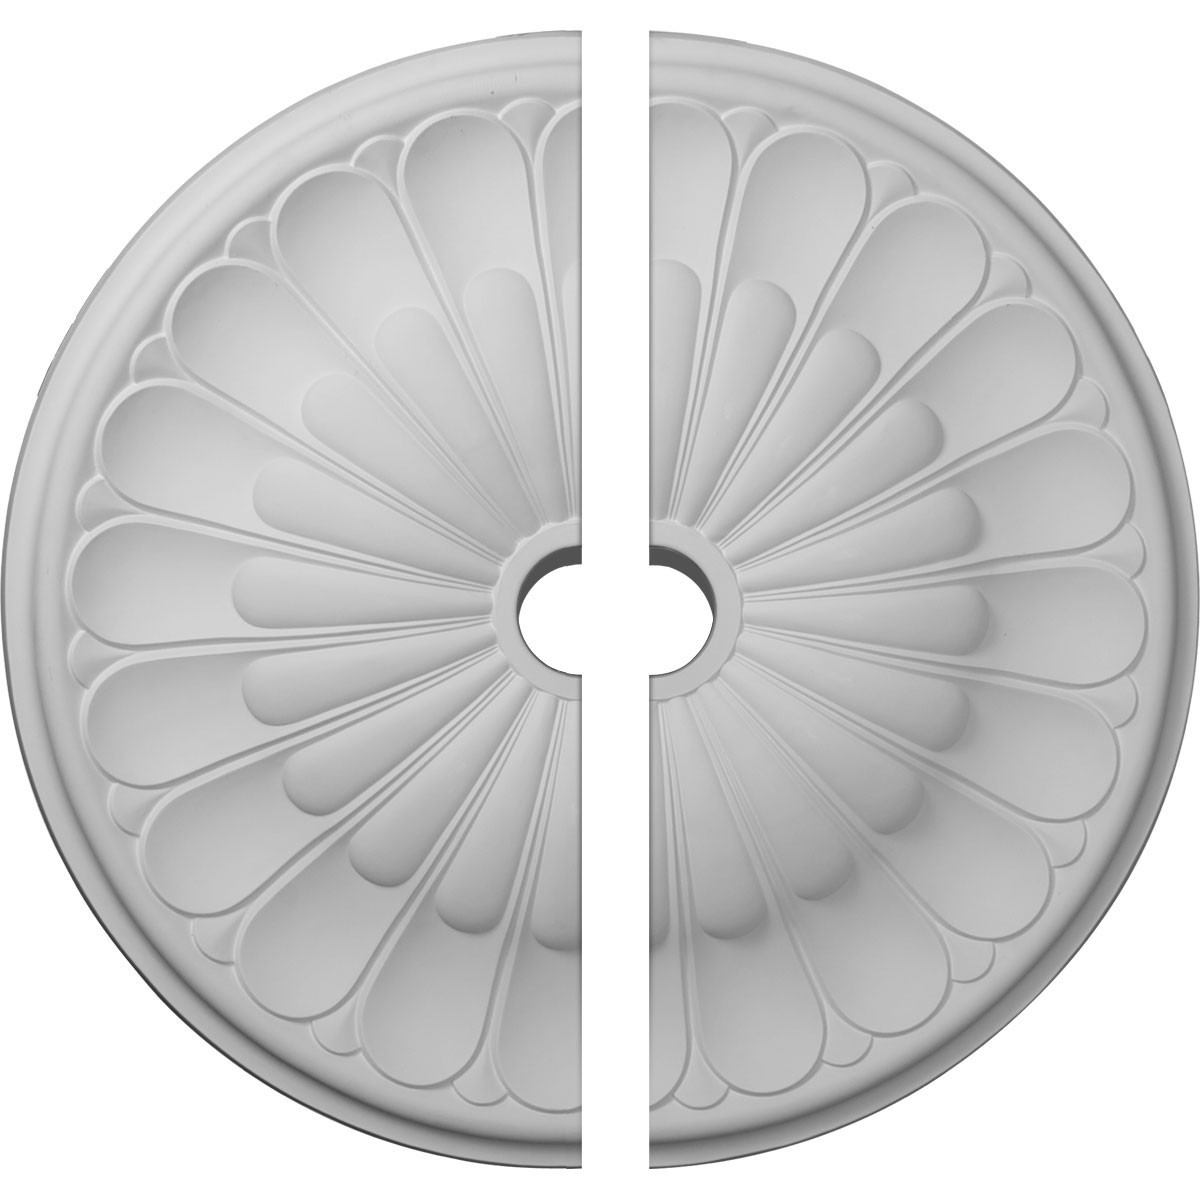 """EM-CM31GO2 - 31 5/8""""OD x 3 5/8""""ID x 1 7/8""""P Gorleen Ceiling Medallion, Two Piece (Fits Canopies up to 3 5/8"""")"""